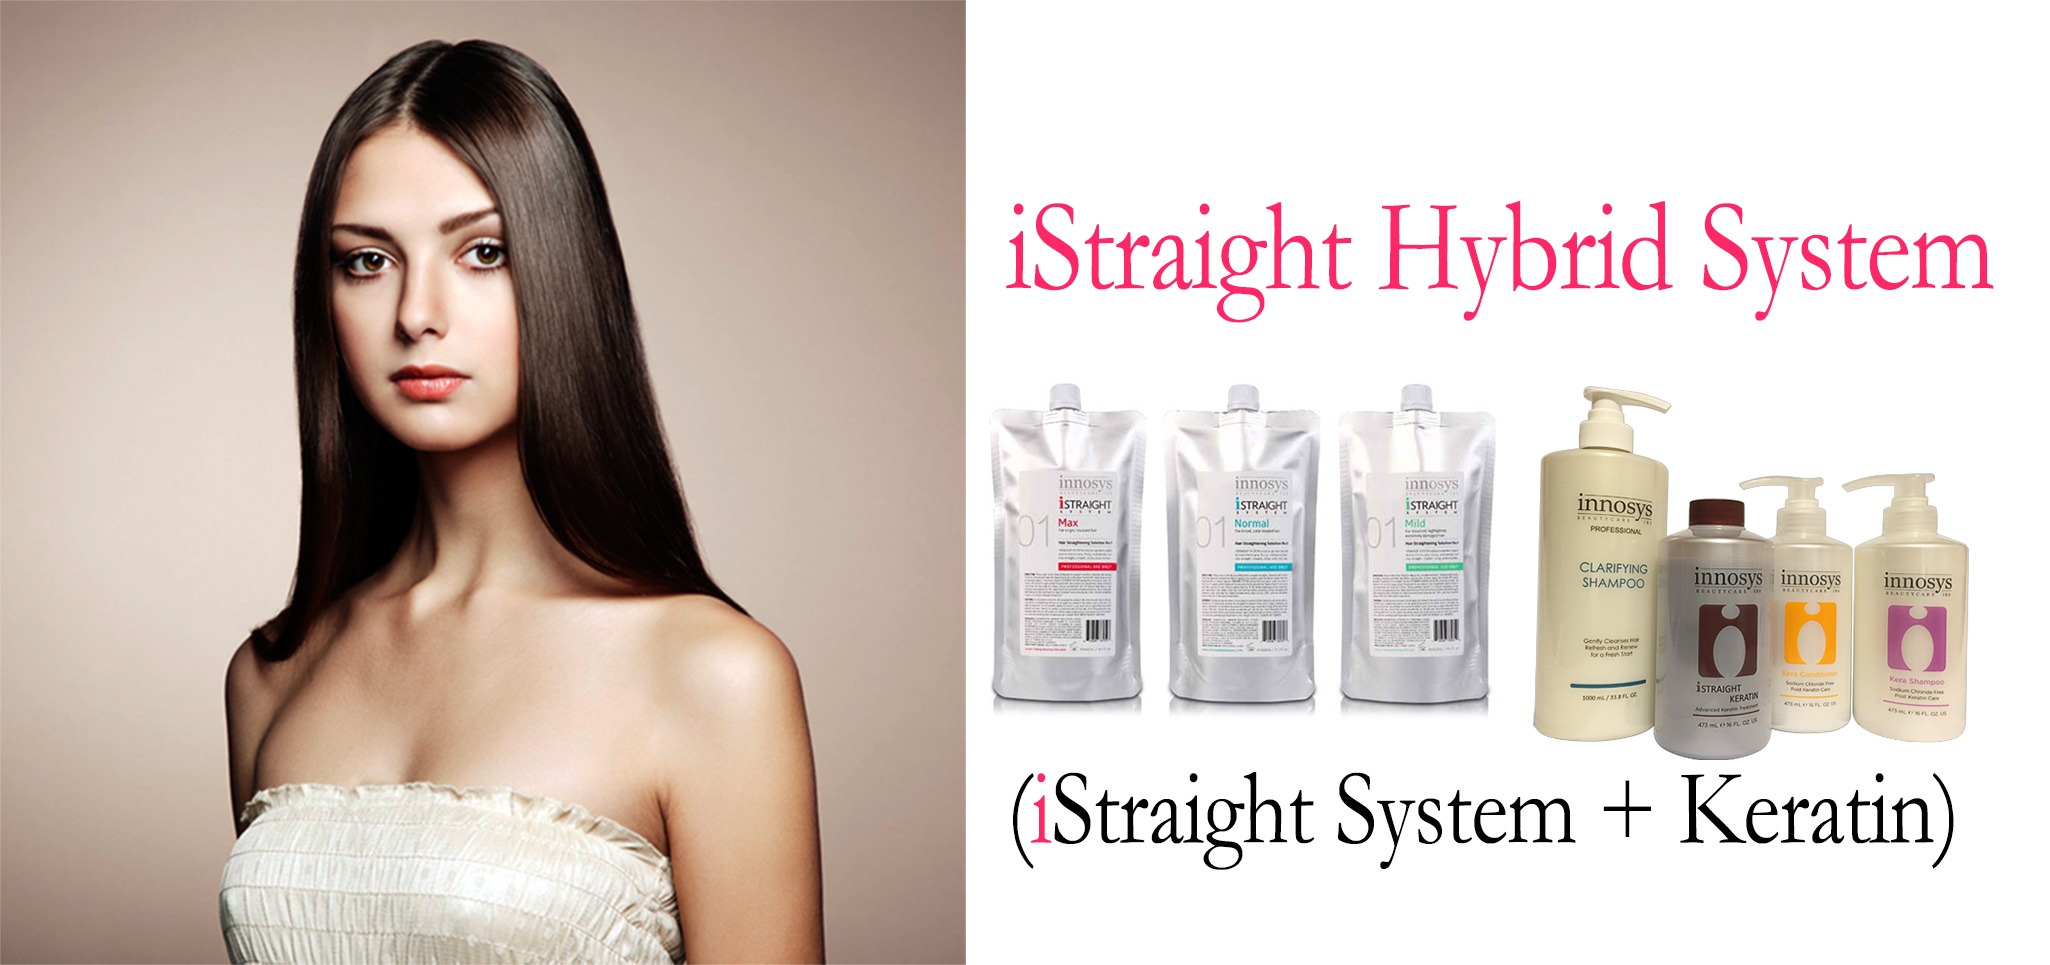 Thermal Reconditioning Straightening Kit Istraight